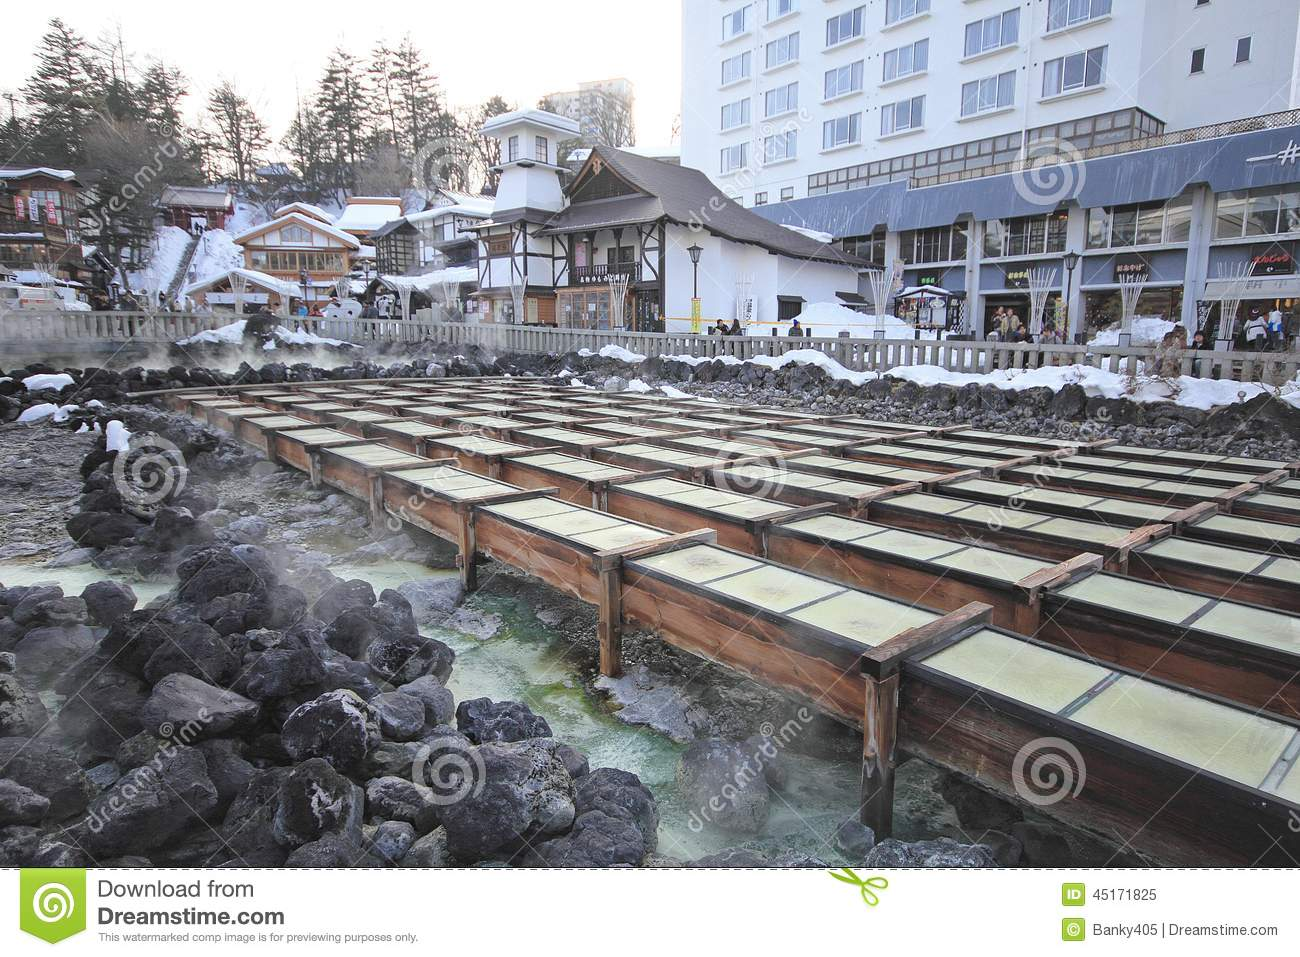 Kusatsu Japan  City pictures : Kusatsu Onsen is one of Japan's most famous hot spring resorts and is ...